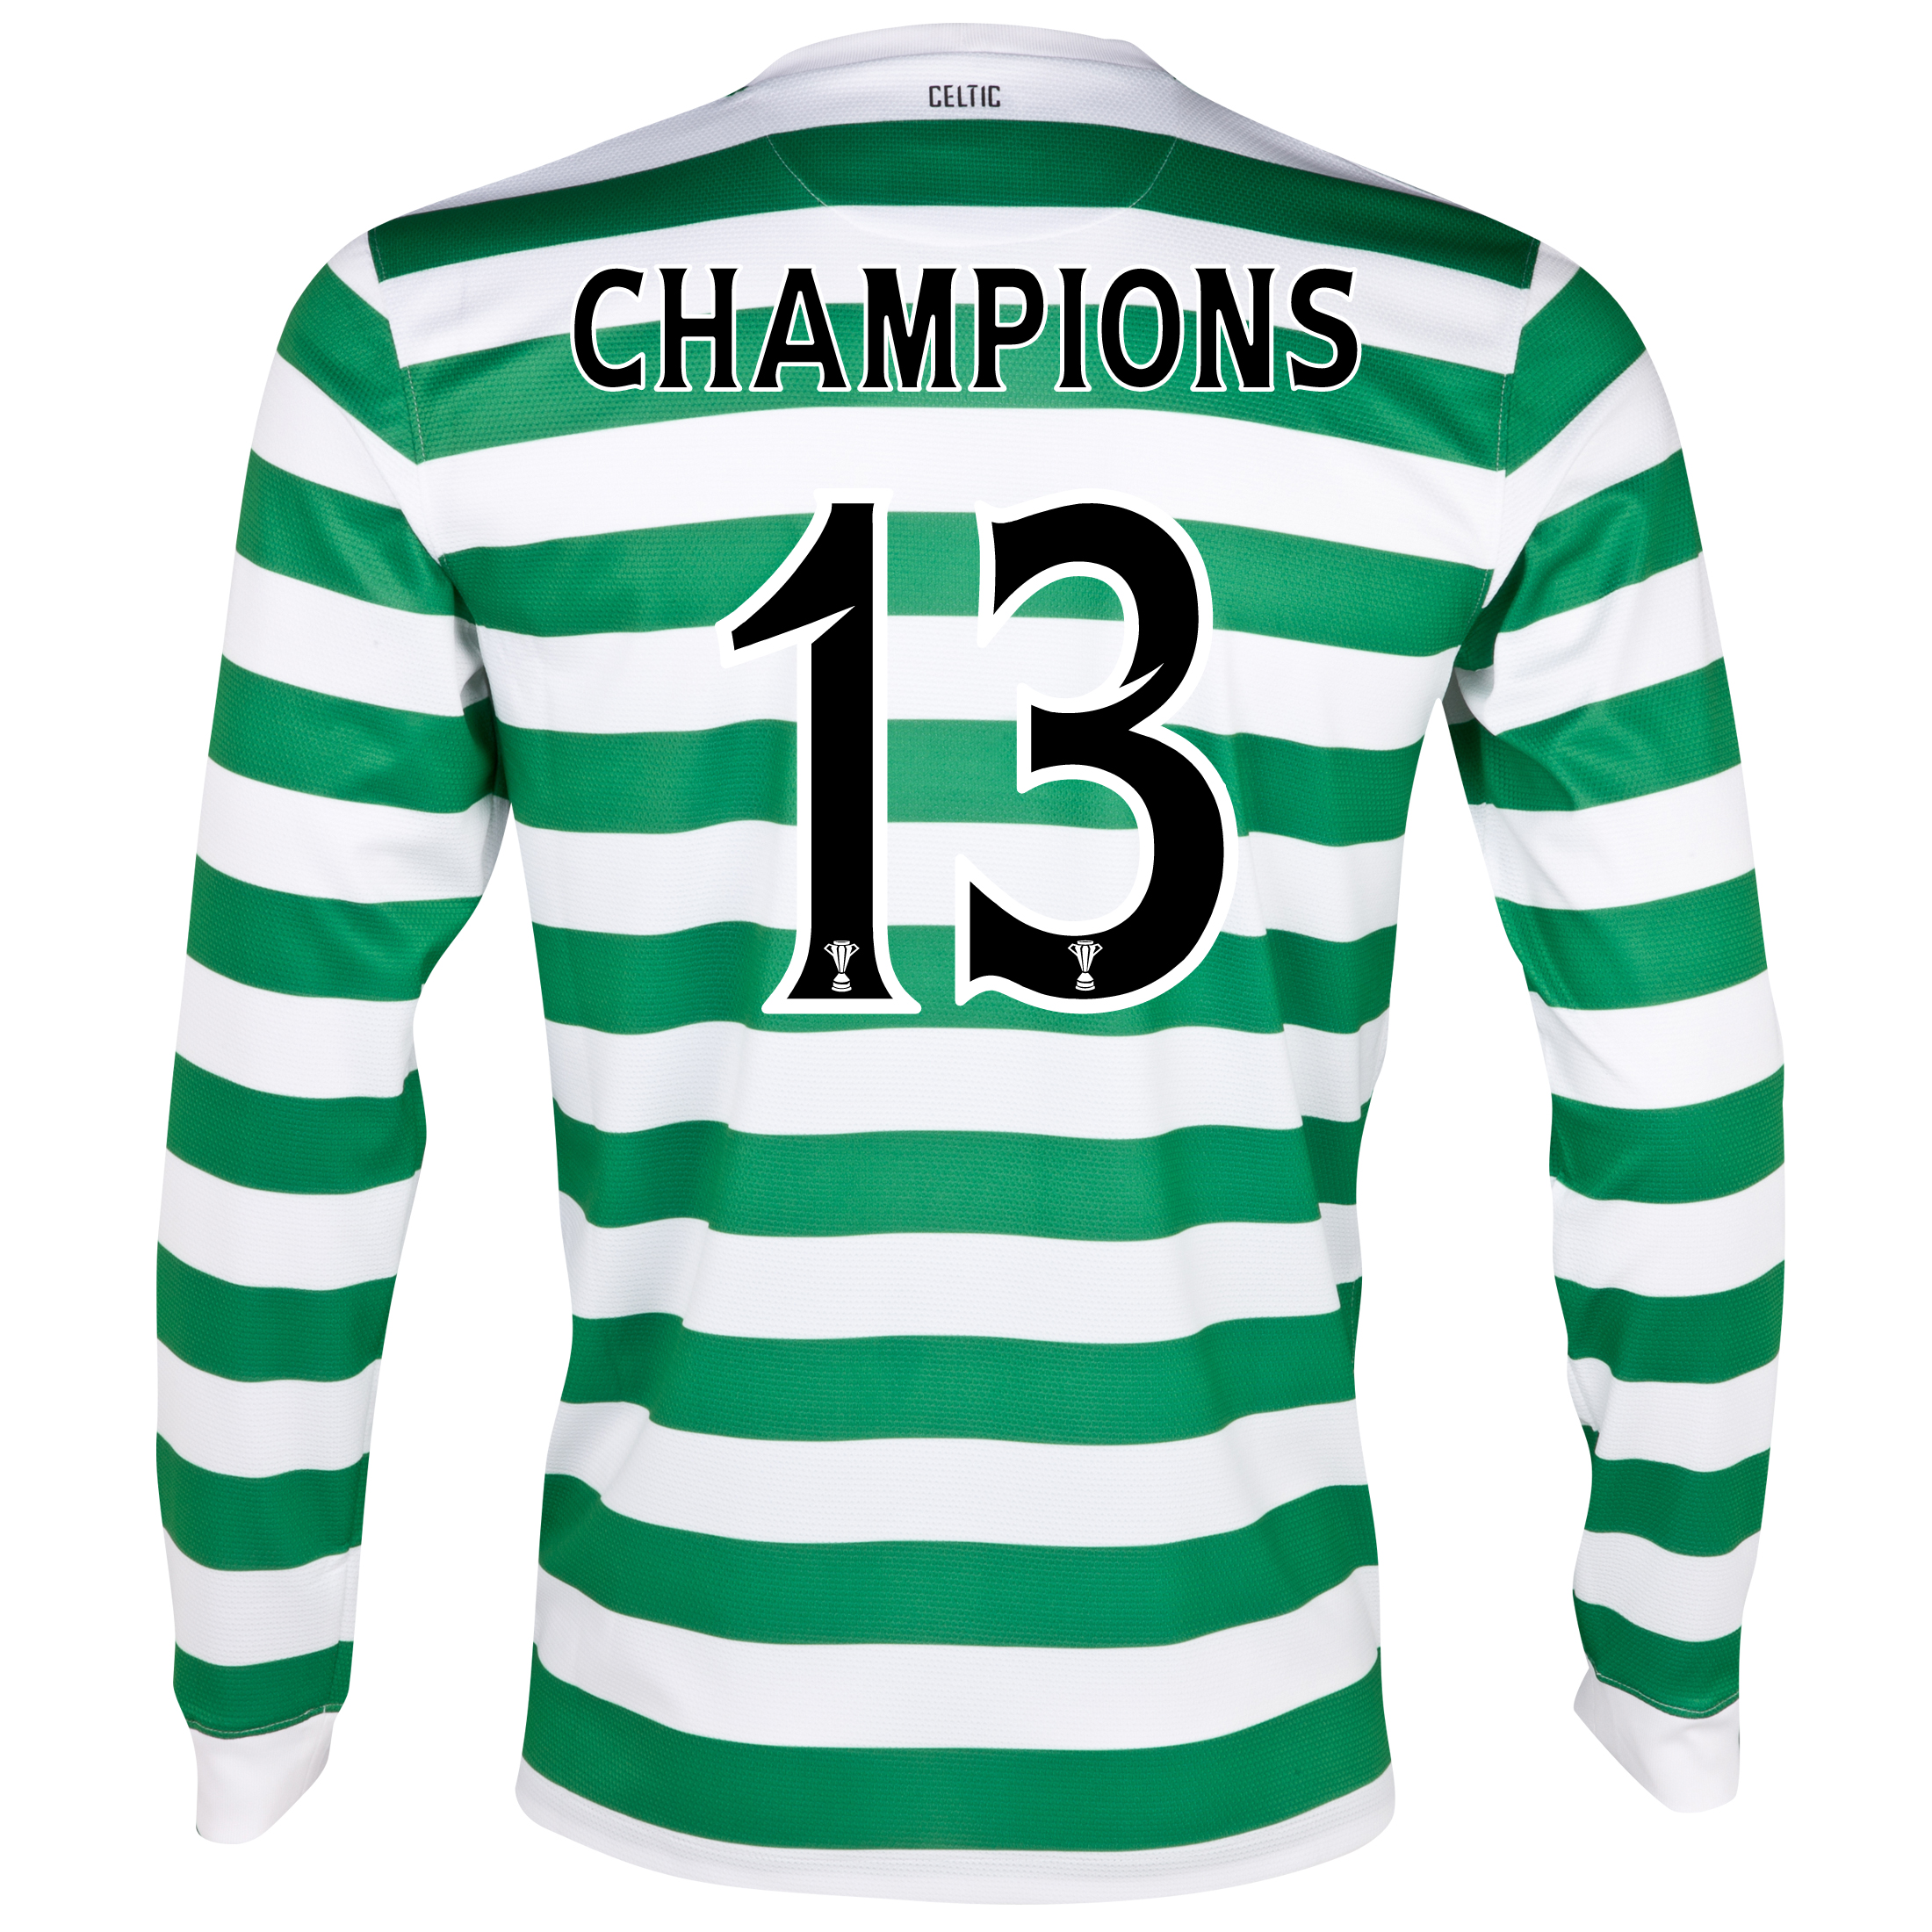 Celtic Home Shirt 2012/13 - Long Sleeved - No Sponsor with Champions 13 printing